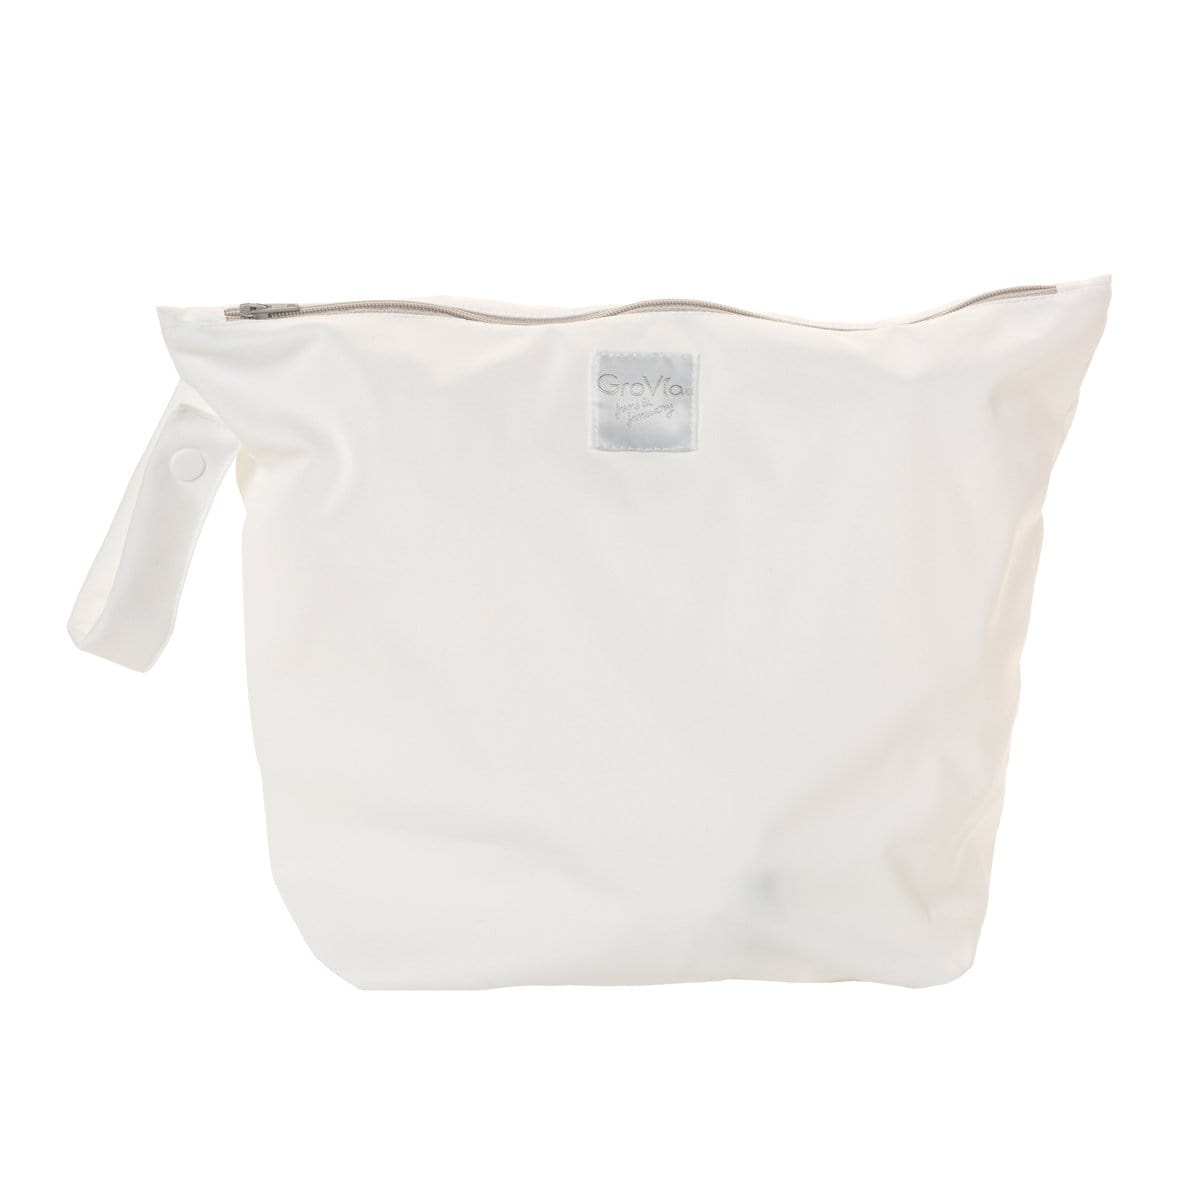 GroVia Zippered Wet Bag - snow